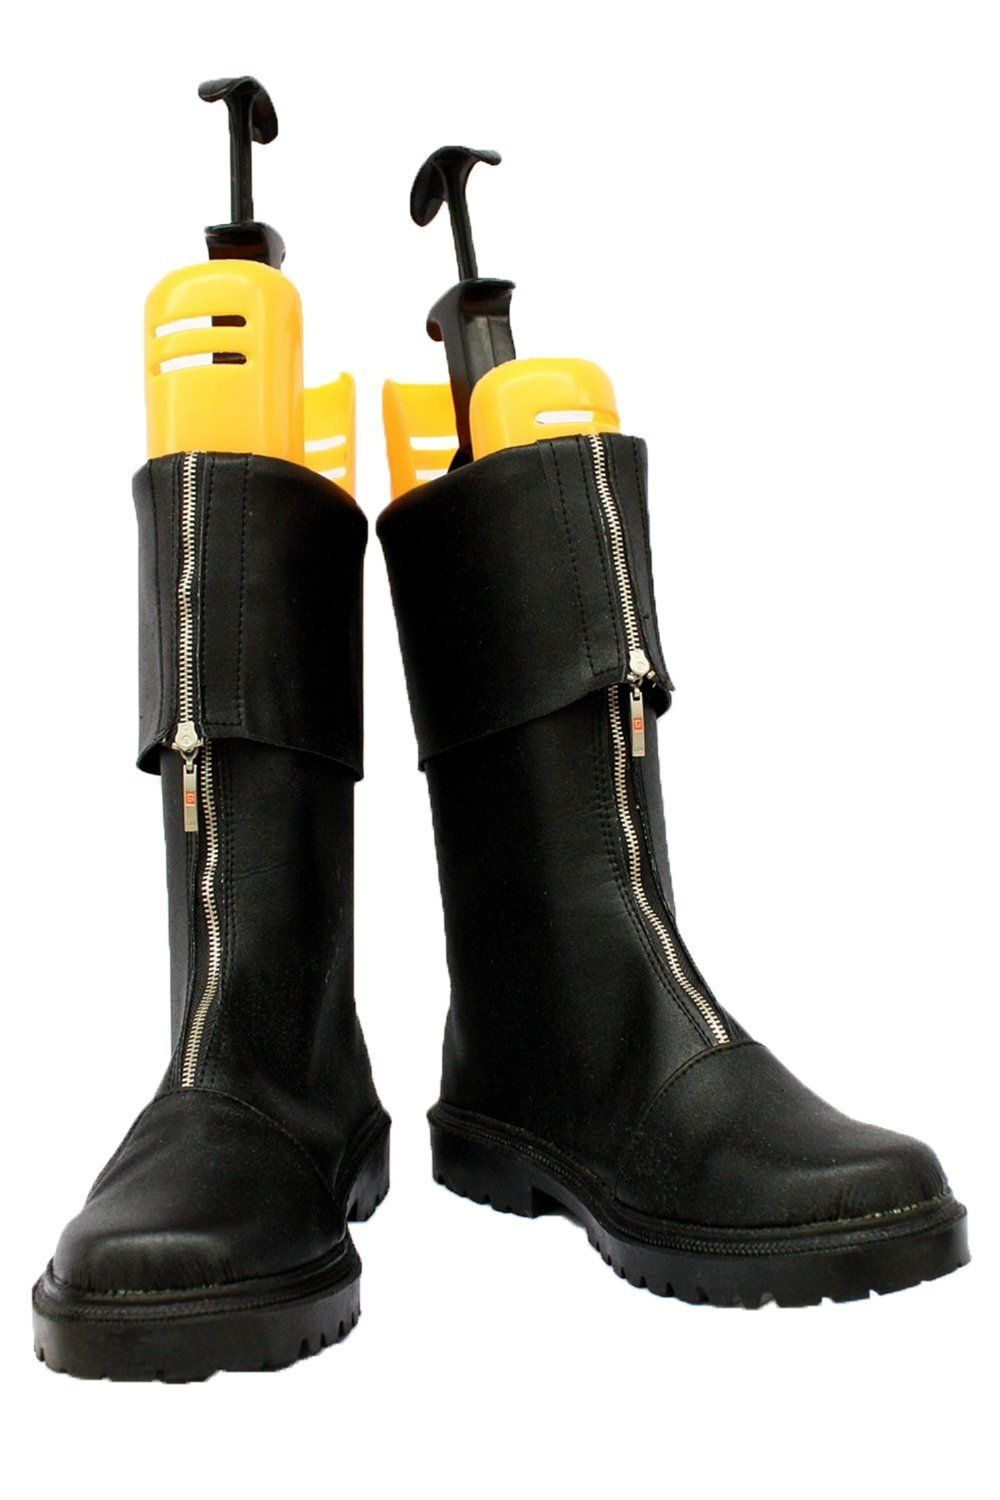 Final Fantasy Vii 7 Zack Fair Cosplay Boots Shoes